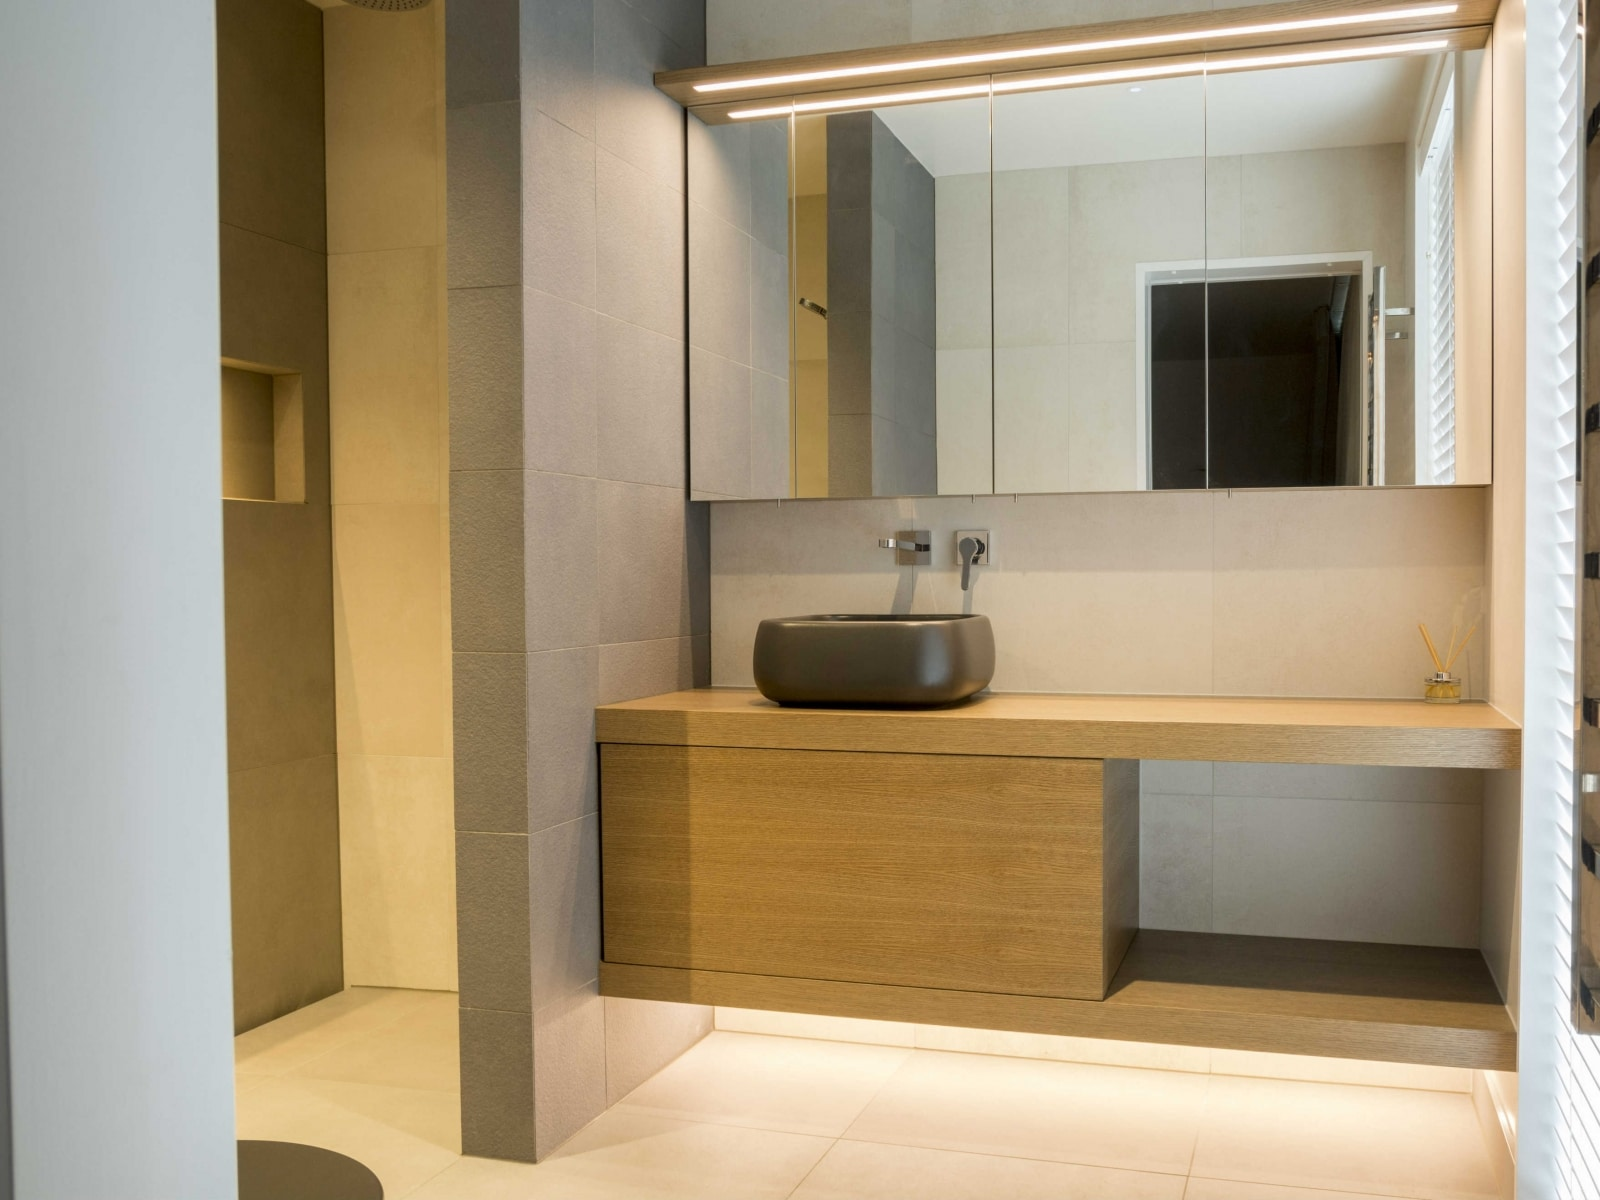 Bathroom Designs Nz our interior and bathroom designs | surfacedesign nelson